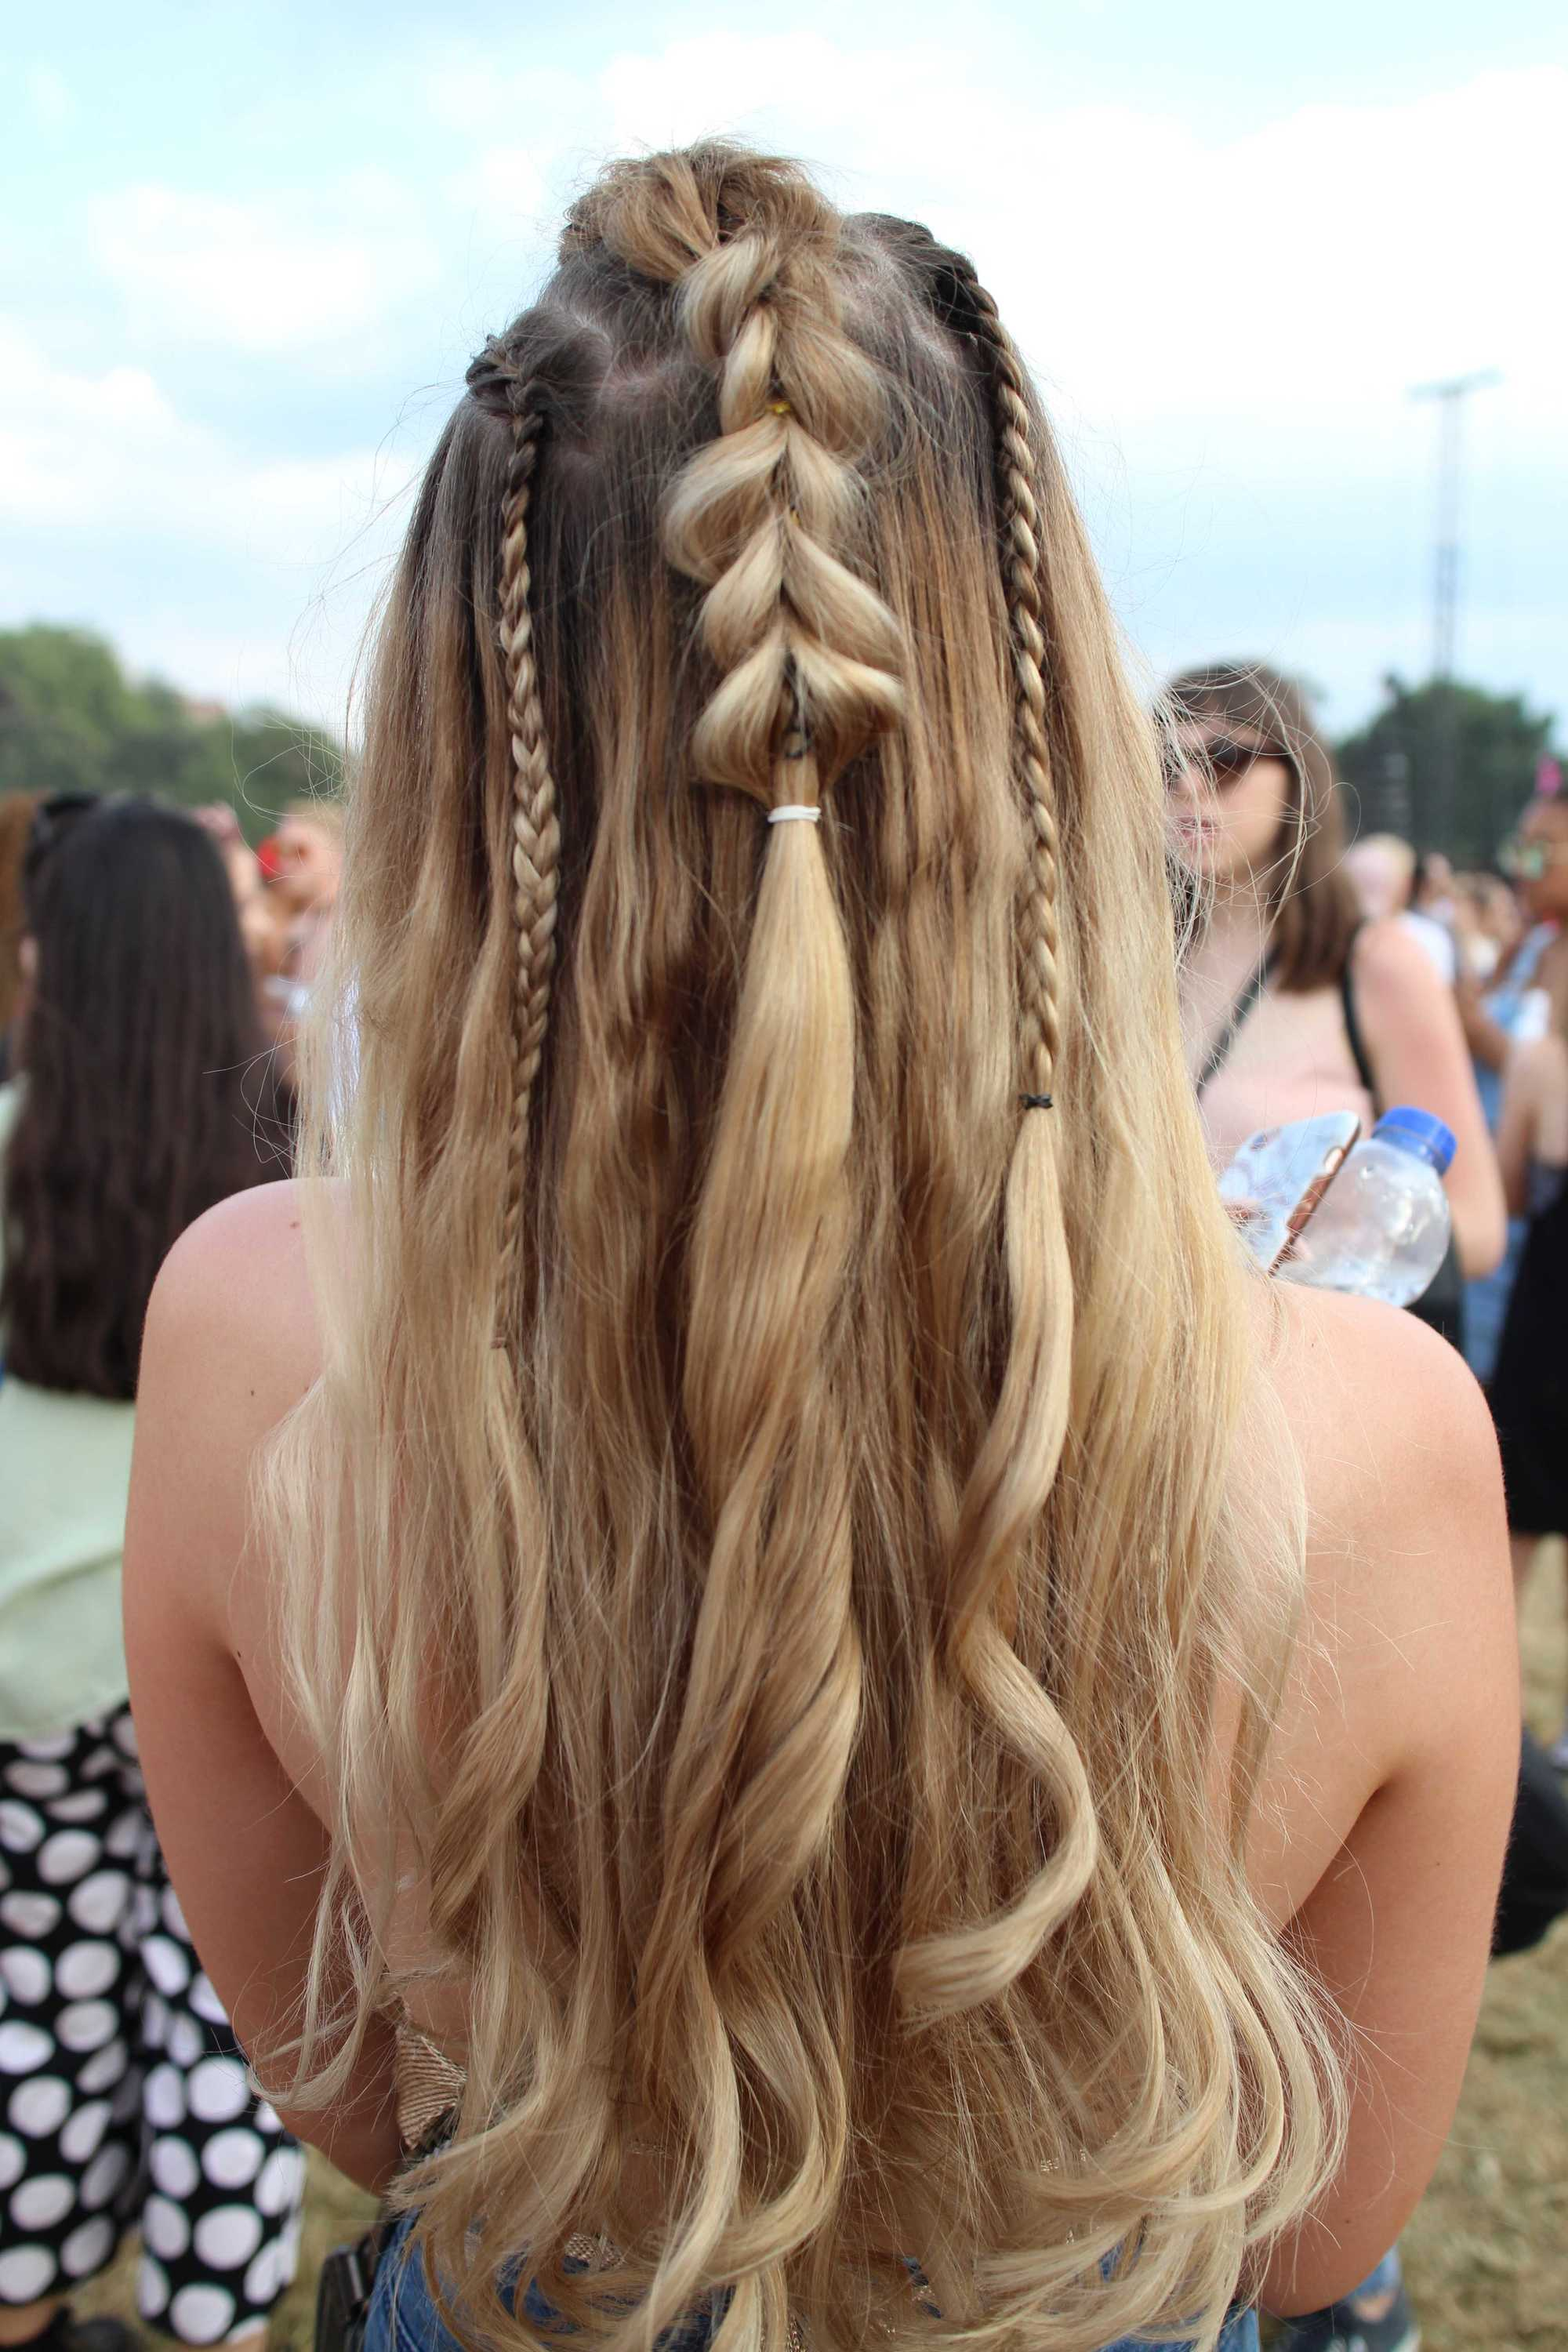 Back view of a woman at Lovebox festival with curled long blonde hair in a half-up pull through braid style with hidden braids.